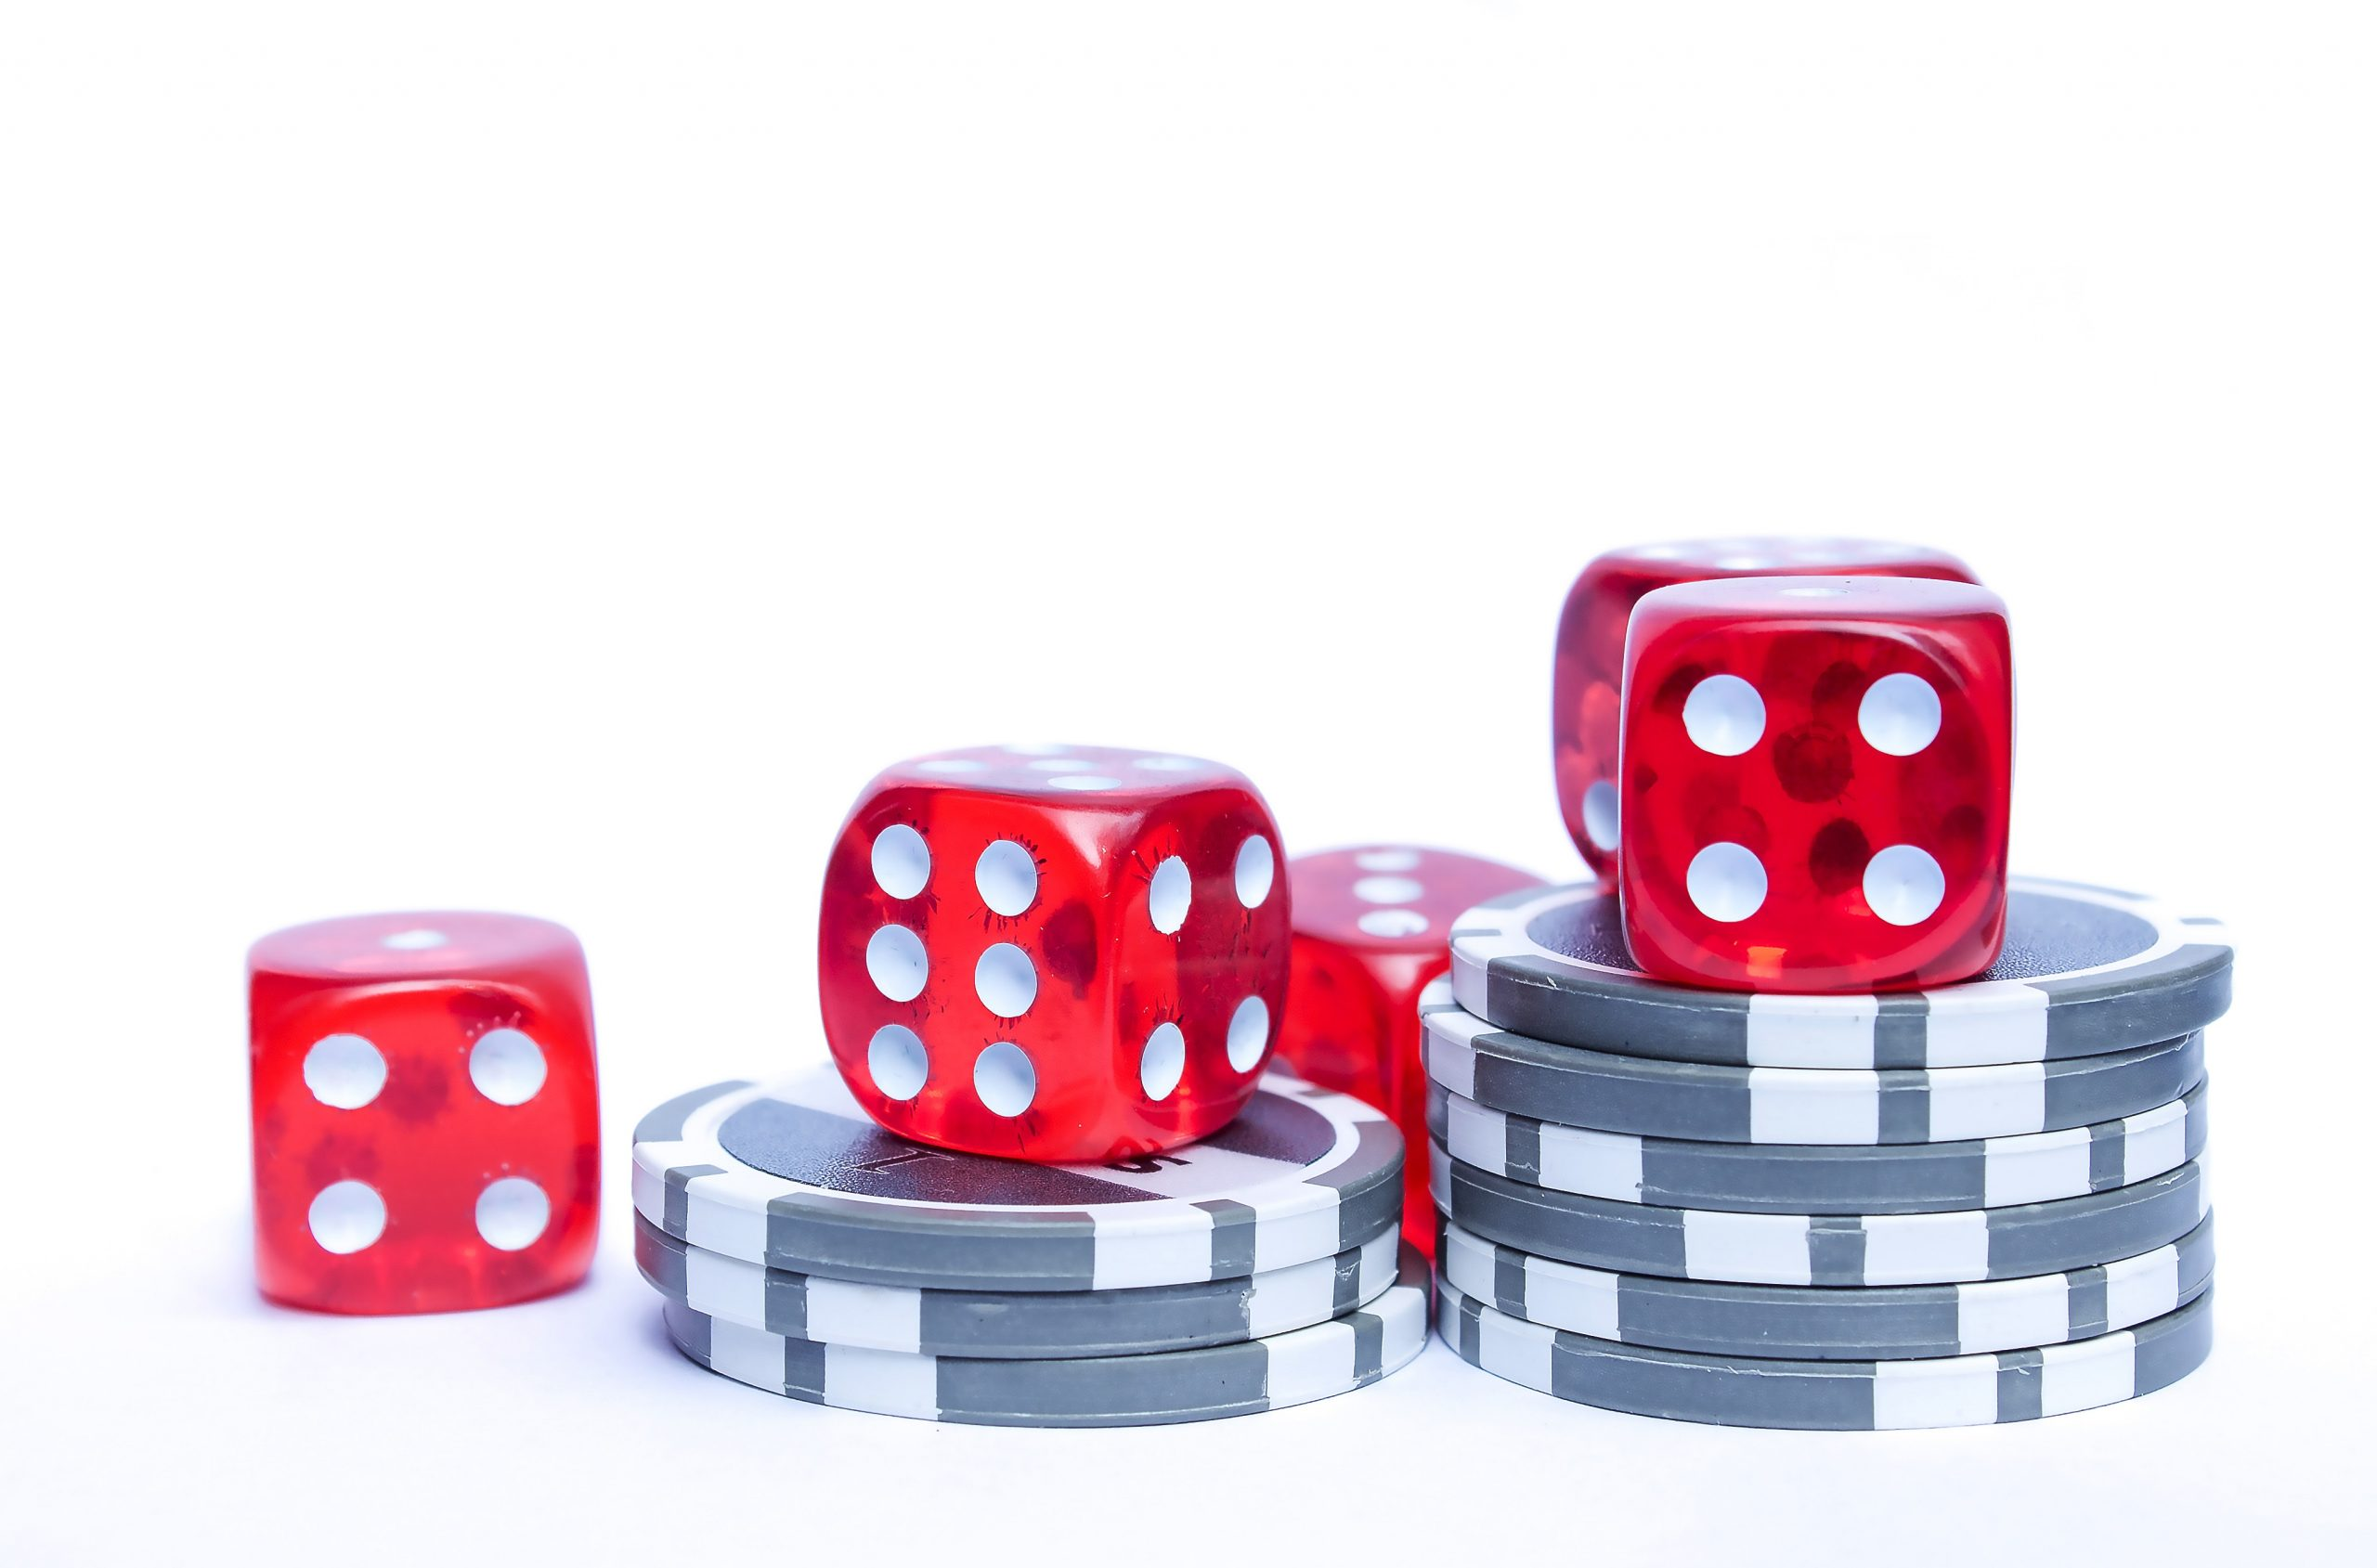 What Does Gambling Do?